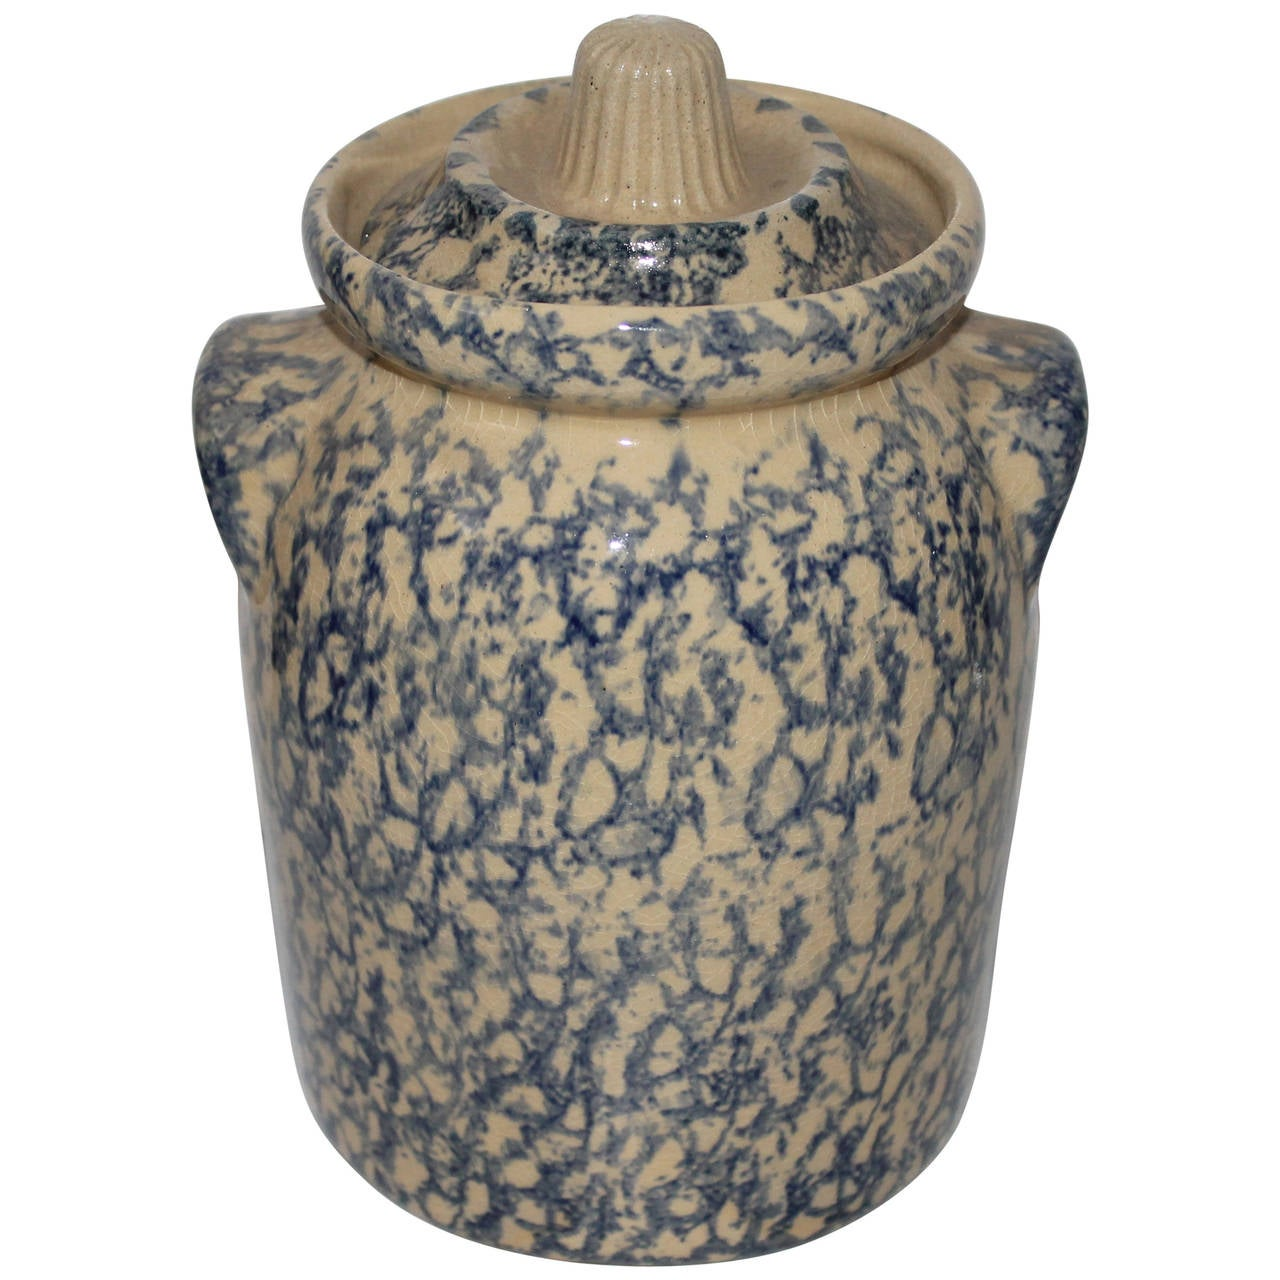 robinson ransbottom pottery dating You searched for: robinson ransbottom  ransbottom robinson pottery co planter, #1302-4, black cocker spaniel indoor planter, made in the usa, roseville, ohio.